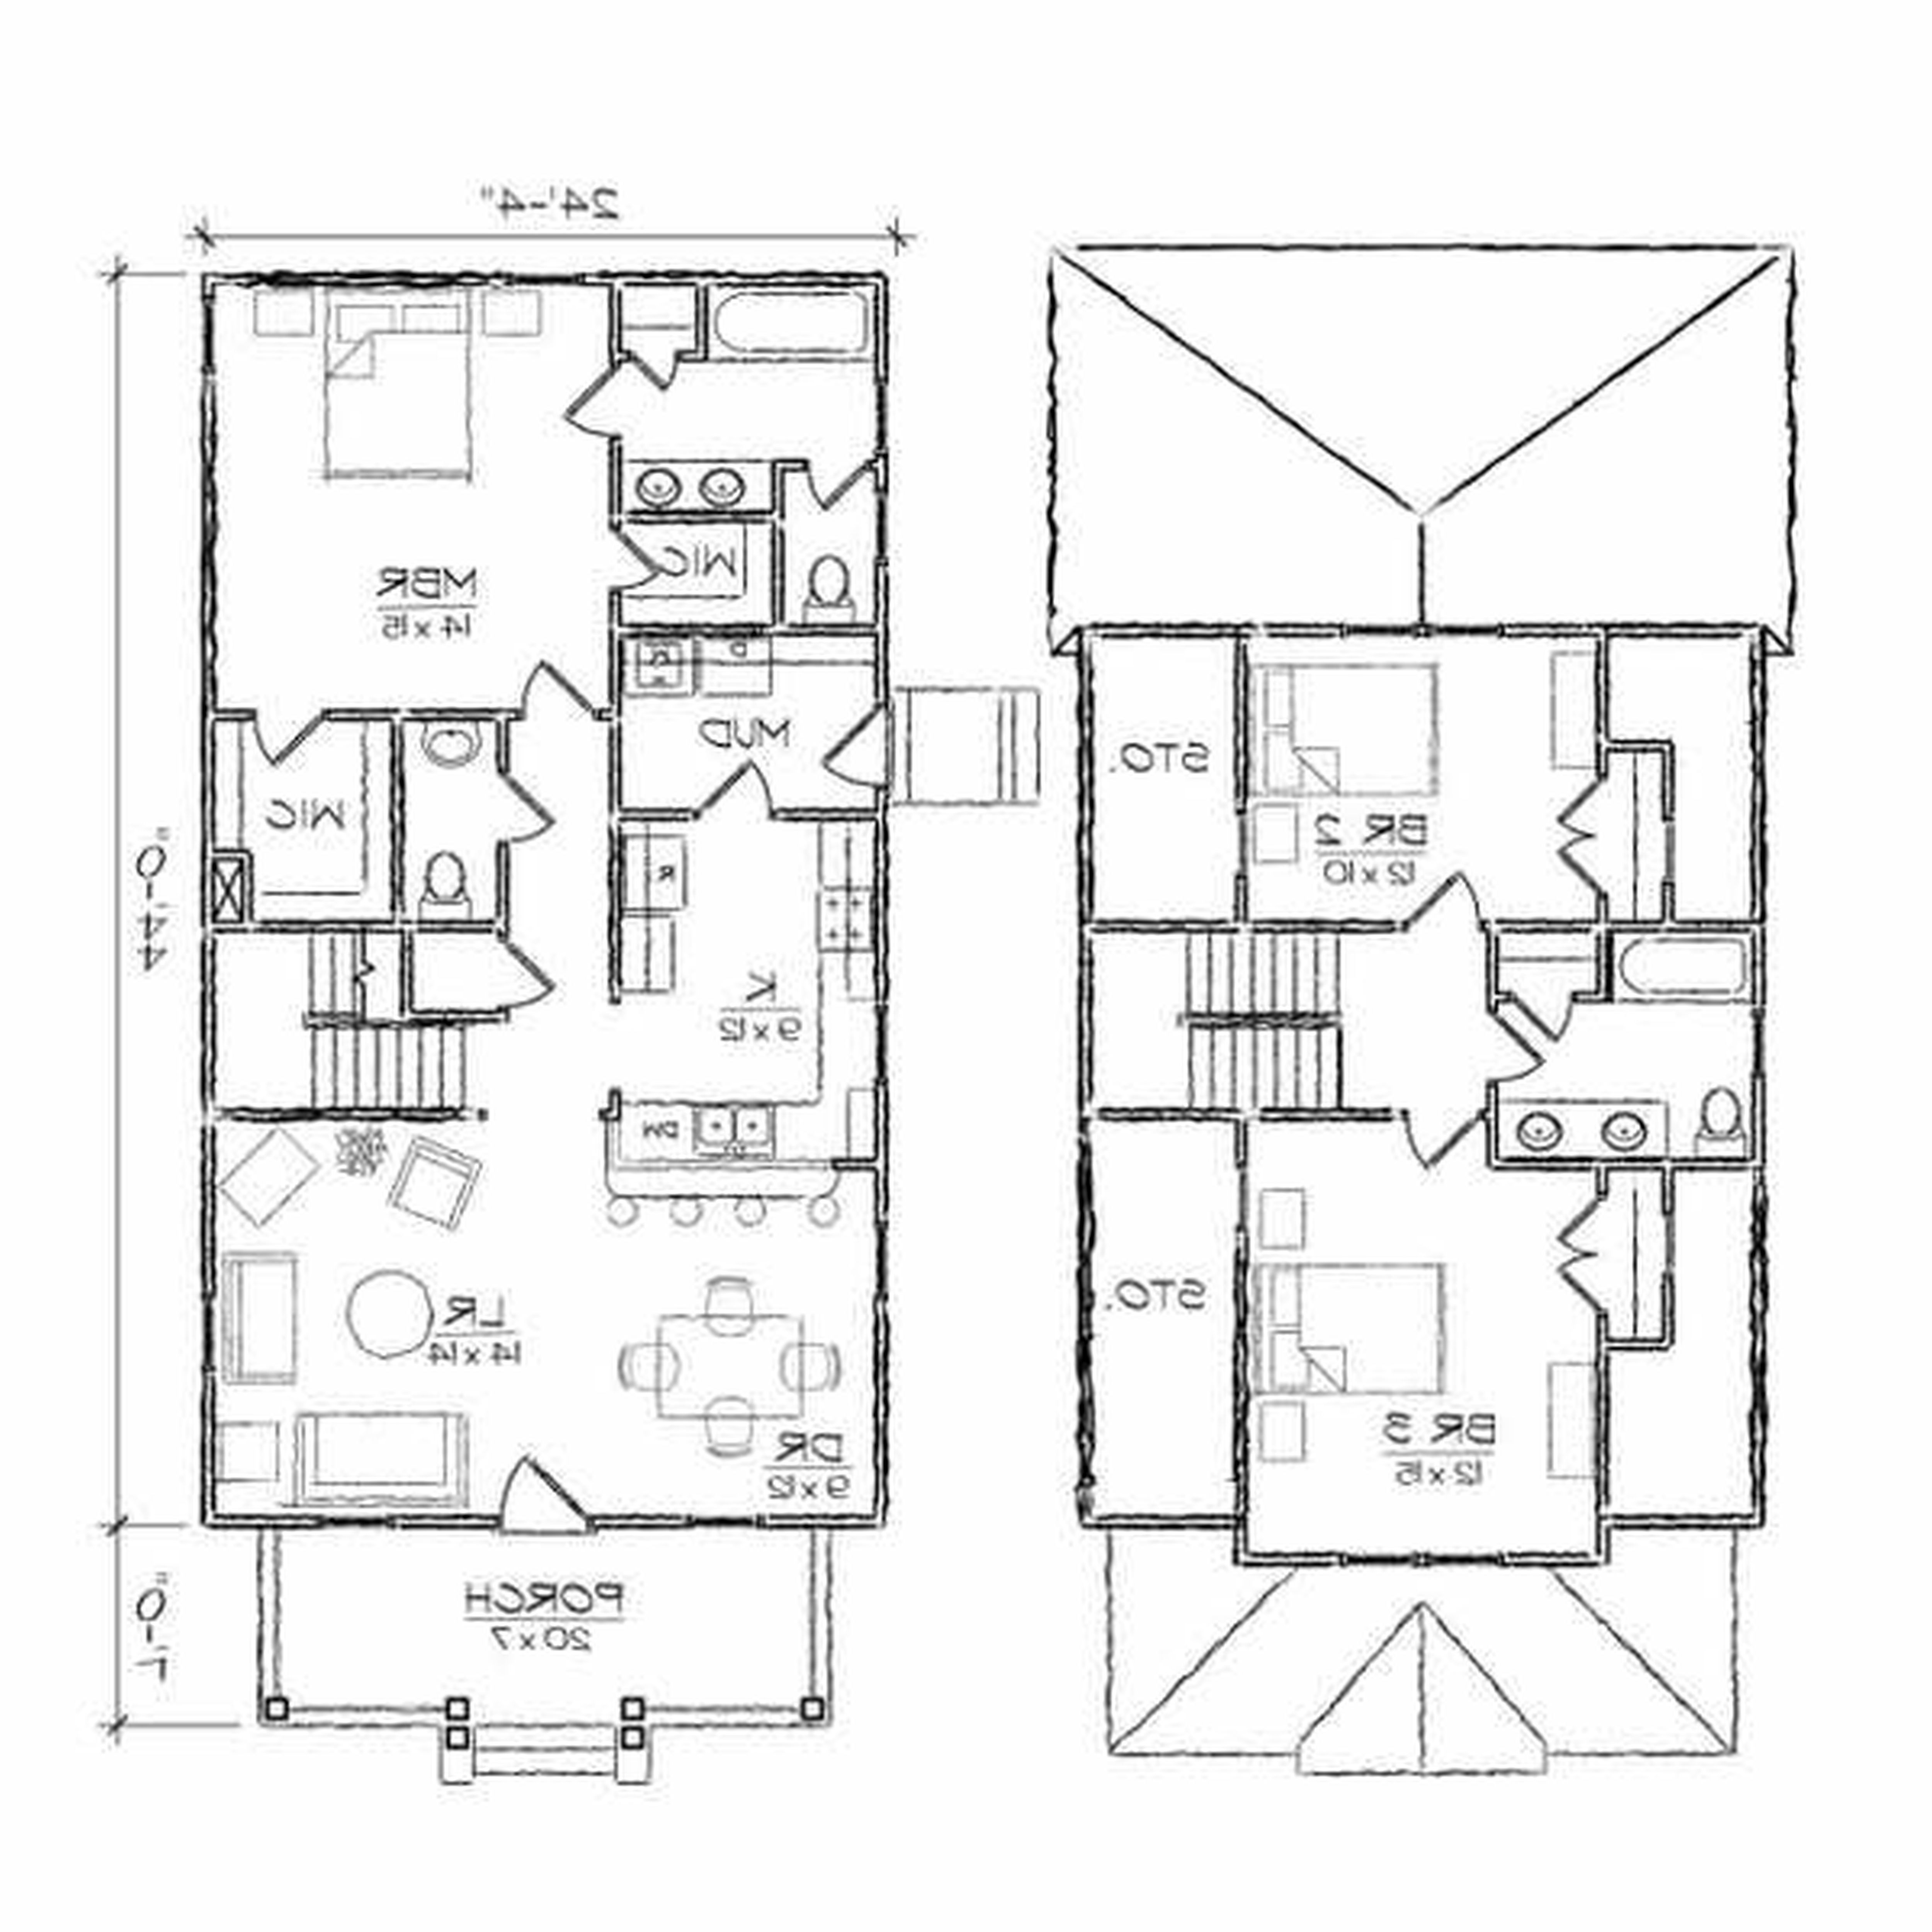 Brick House Drawing at GetDrawings.com | Free for personal use Brick ...